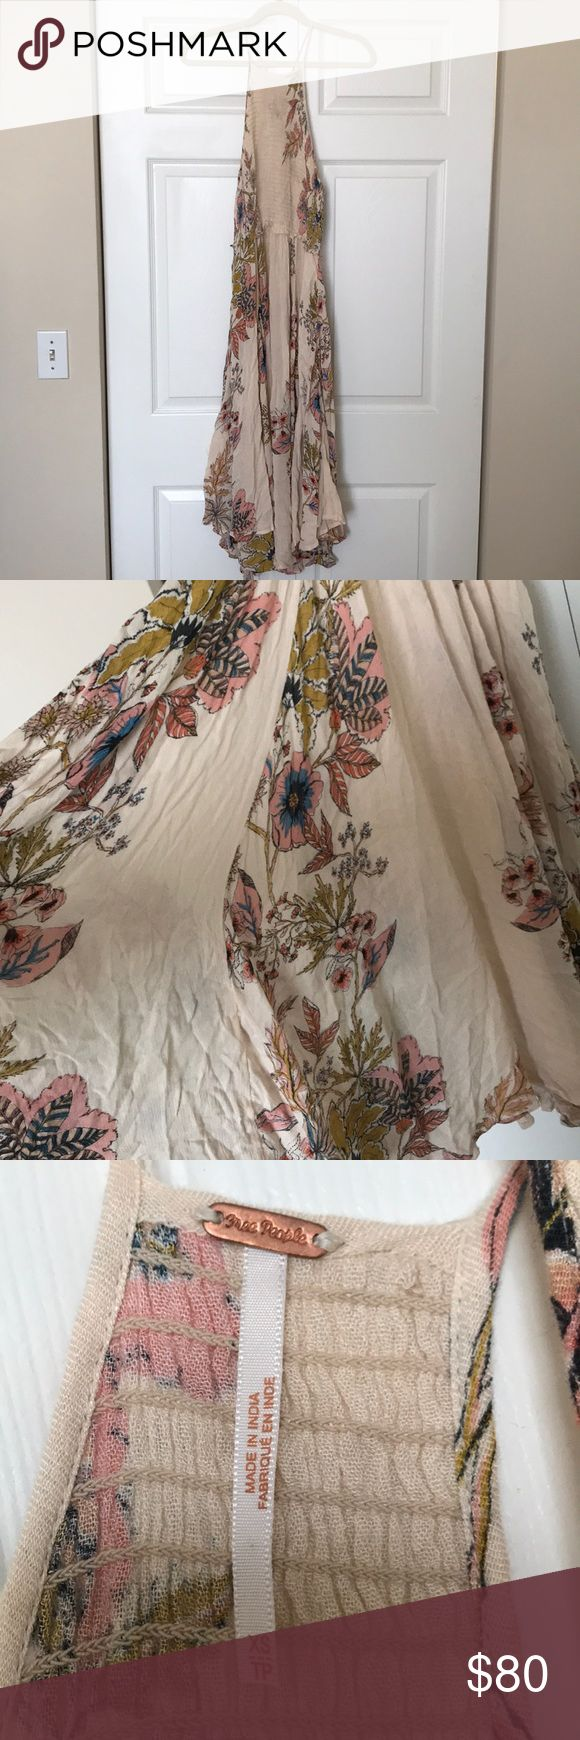 "Free People Pale pink floral midi dress Free people  ""Tea length"" or midi  Pale pink/nude with mustard, coral and blue floral print Size XS (4-6) Never worn Free People Dresses Midi"